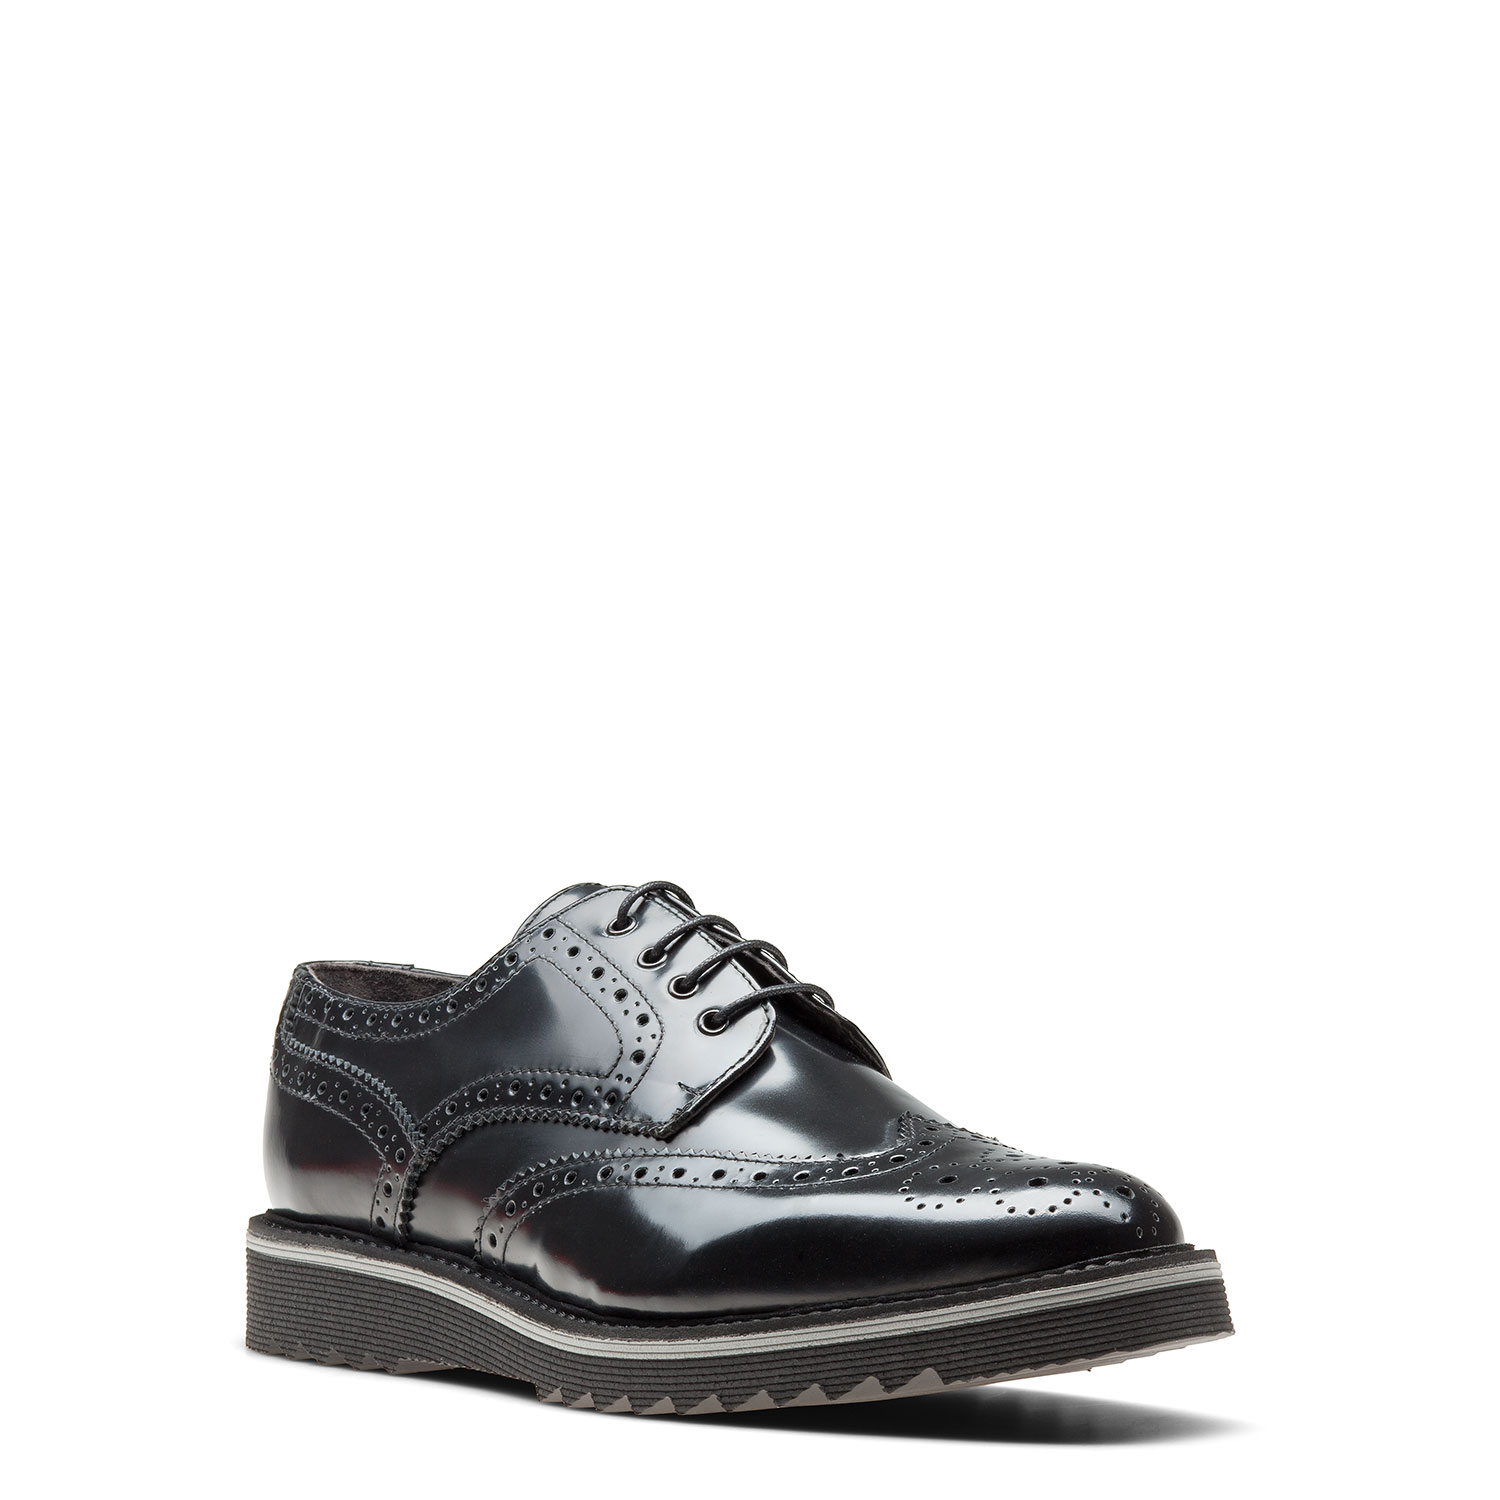 Men's shoes CARLO PAZOLINI LN-X5702-1